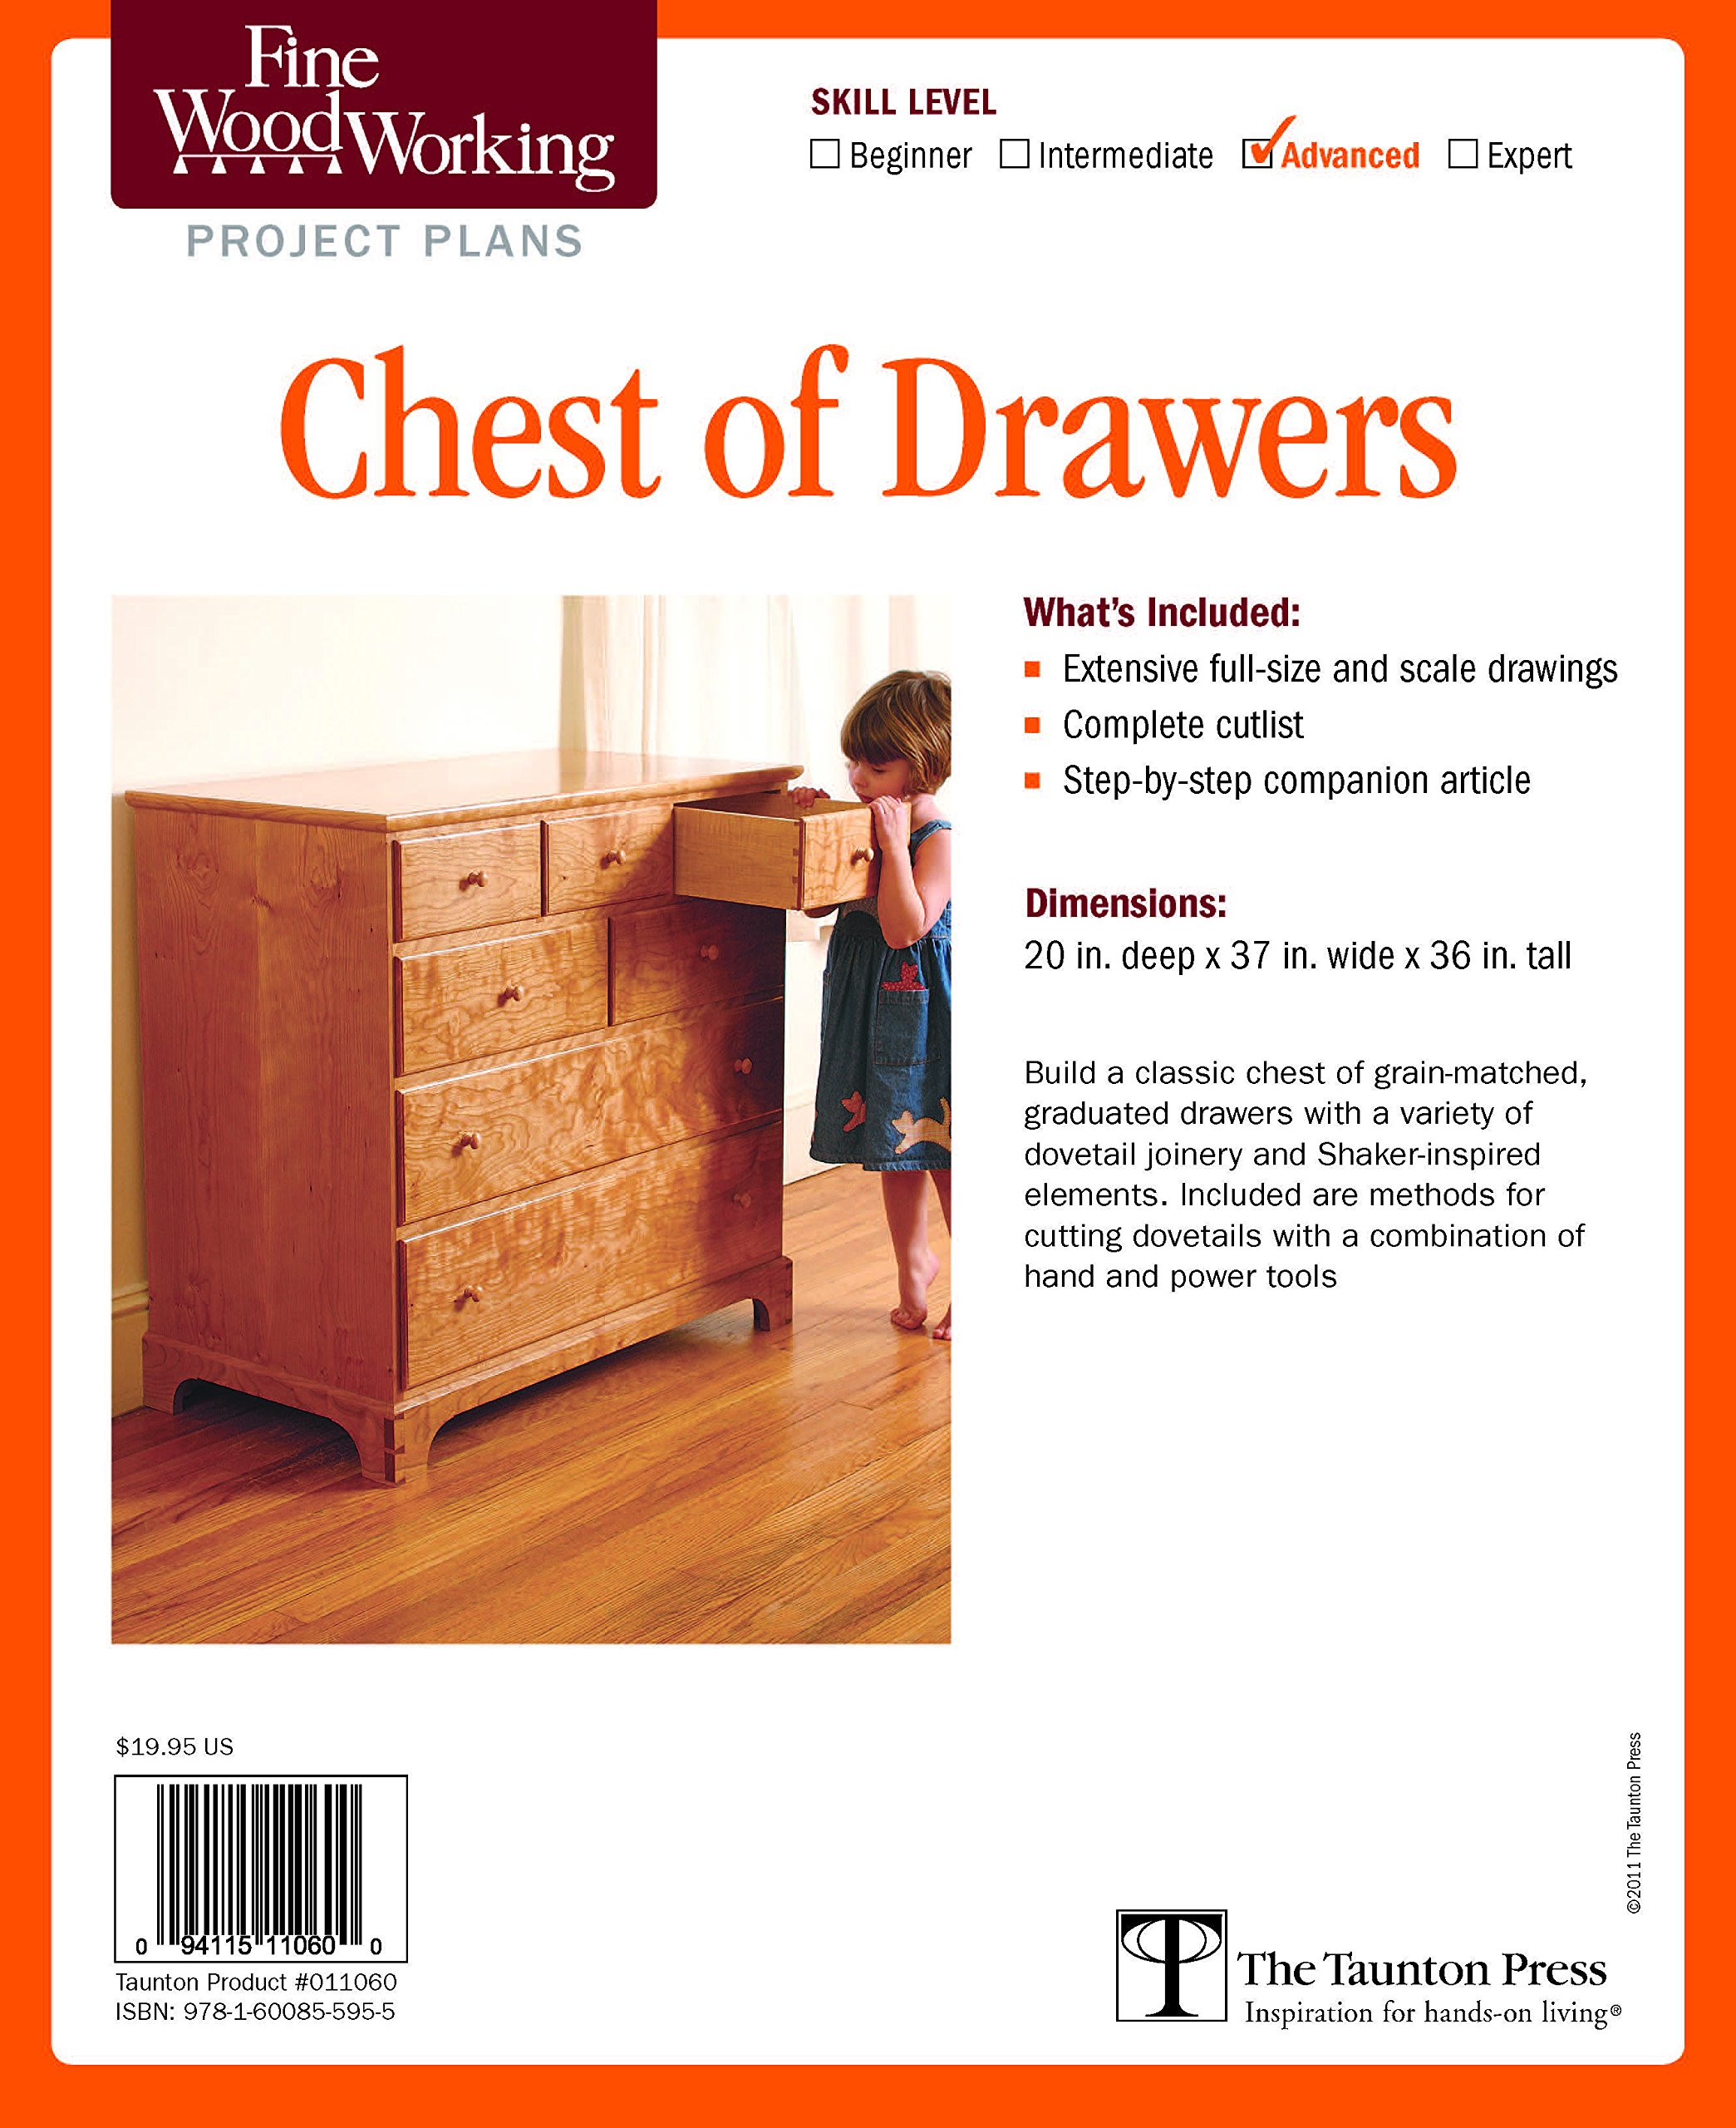 Fine Woodworking's Chest of Drawers Plan